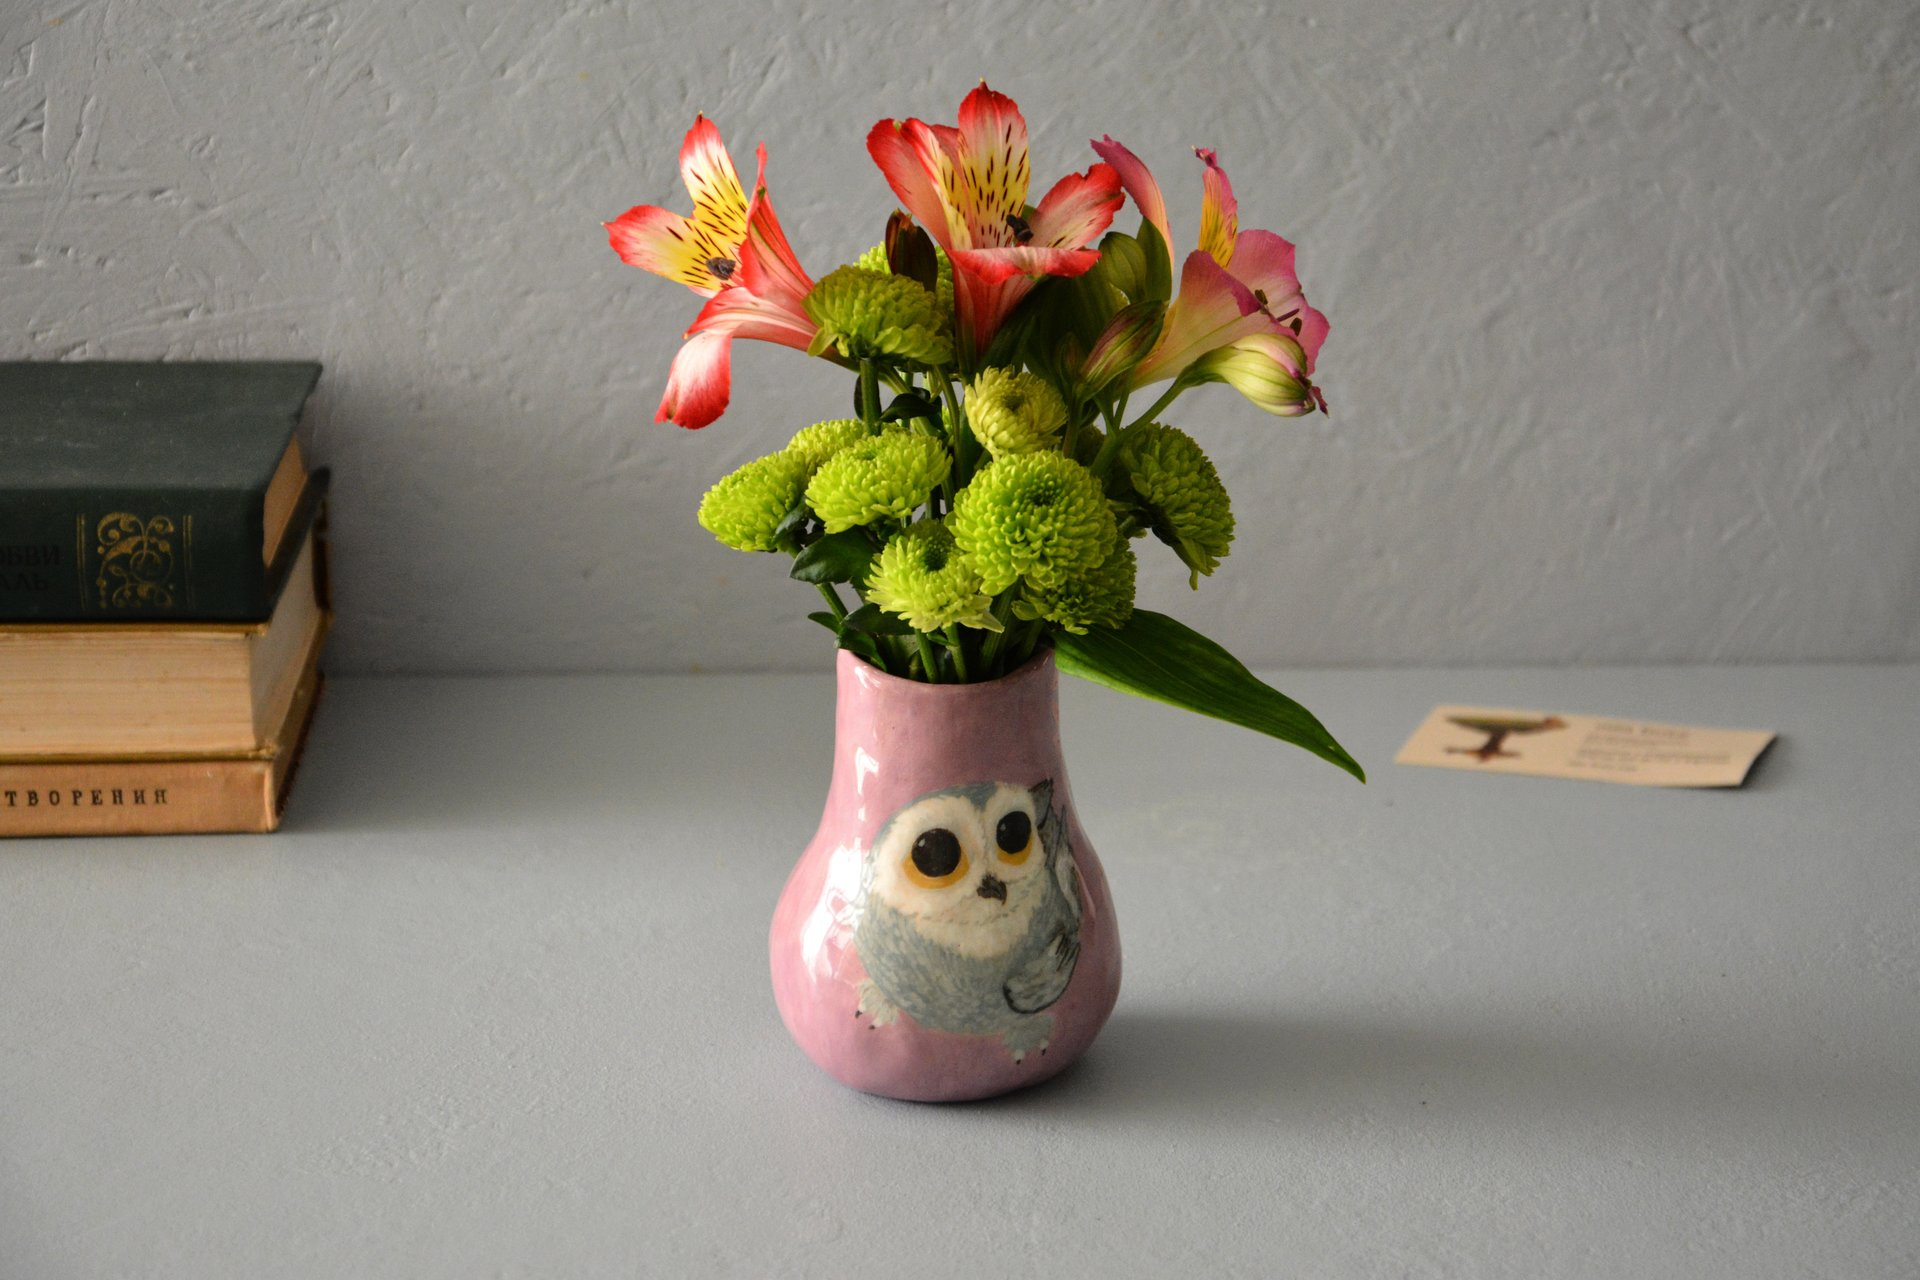 Hand painted vase (with a picture) «The Snowy owl», height - 10 cm. Photo 985.